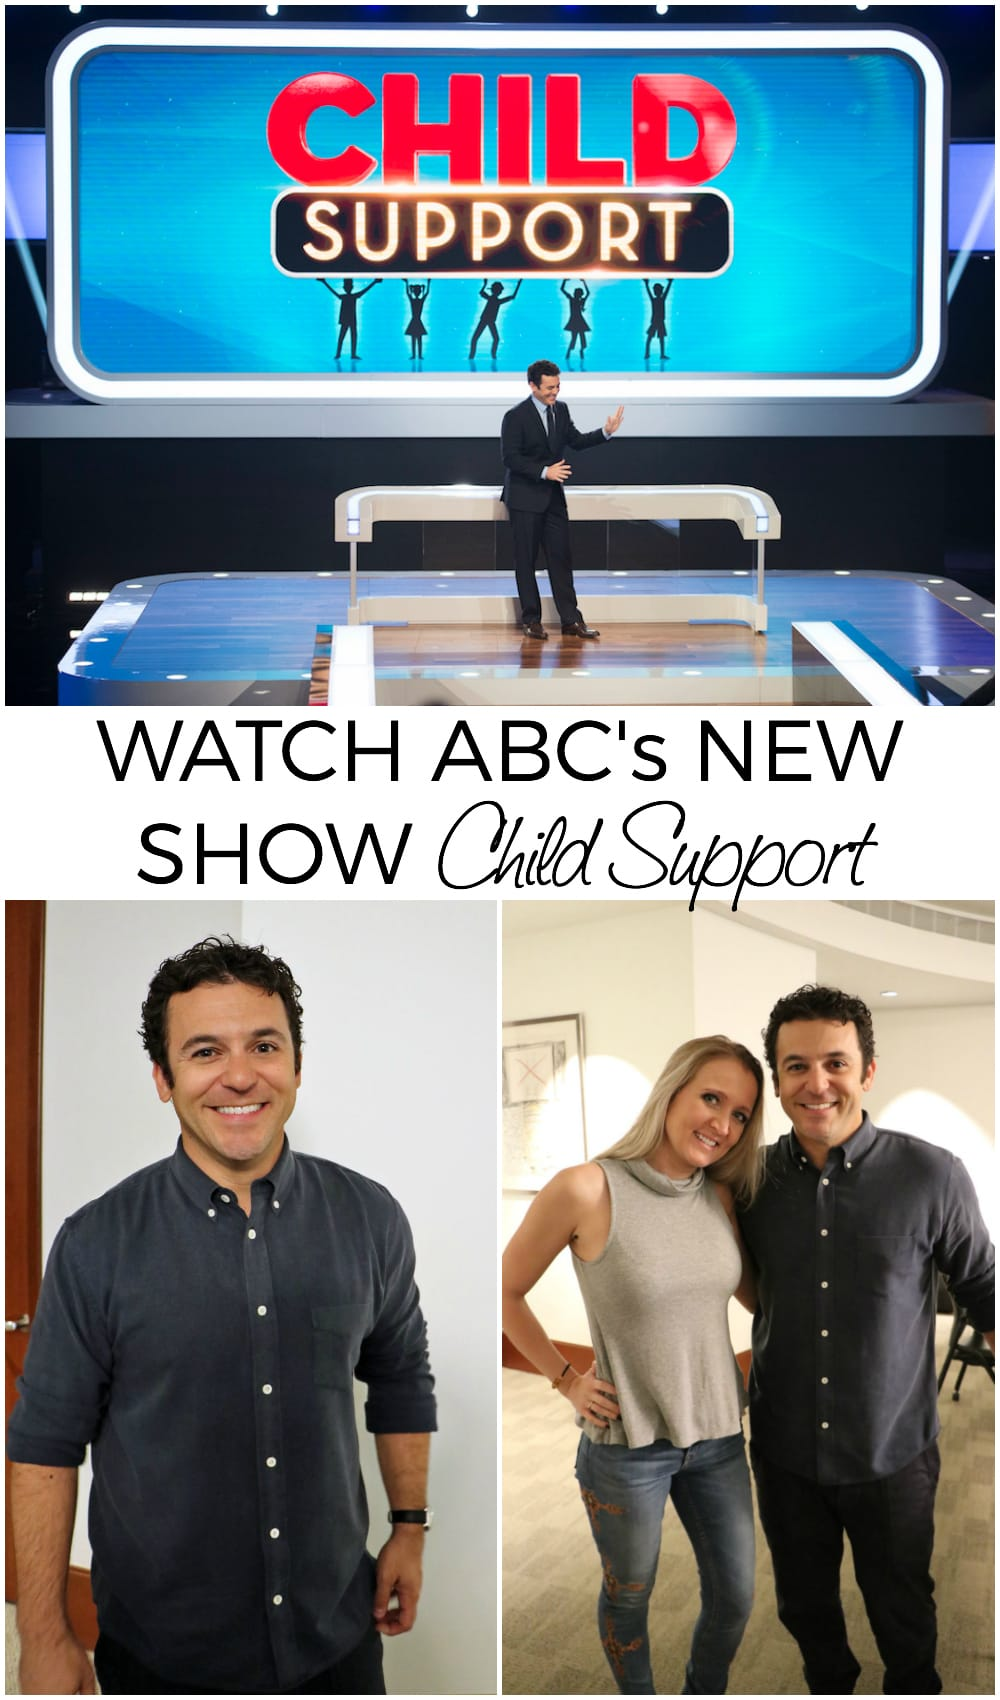 Fred Savage is Hosting the New Child Support Show. This show is surprisingly funny and entertaining! Catch the premiere 1/5 at 8 PM EDT on ABC! #ChildSupportABC #ABCTVEvent